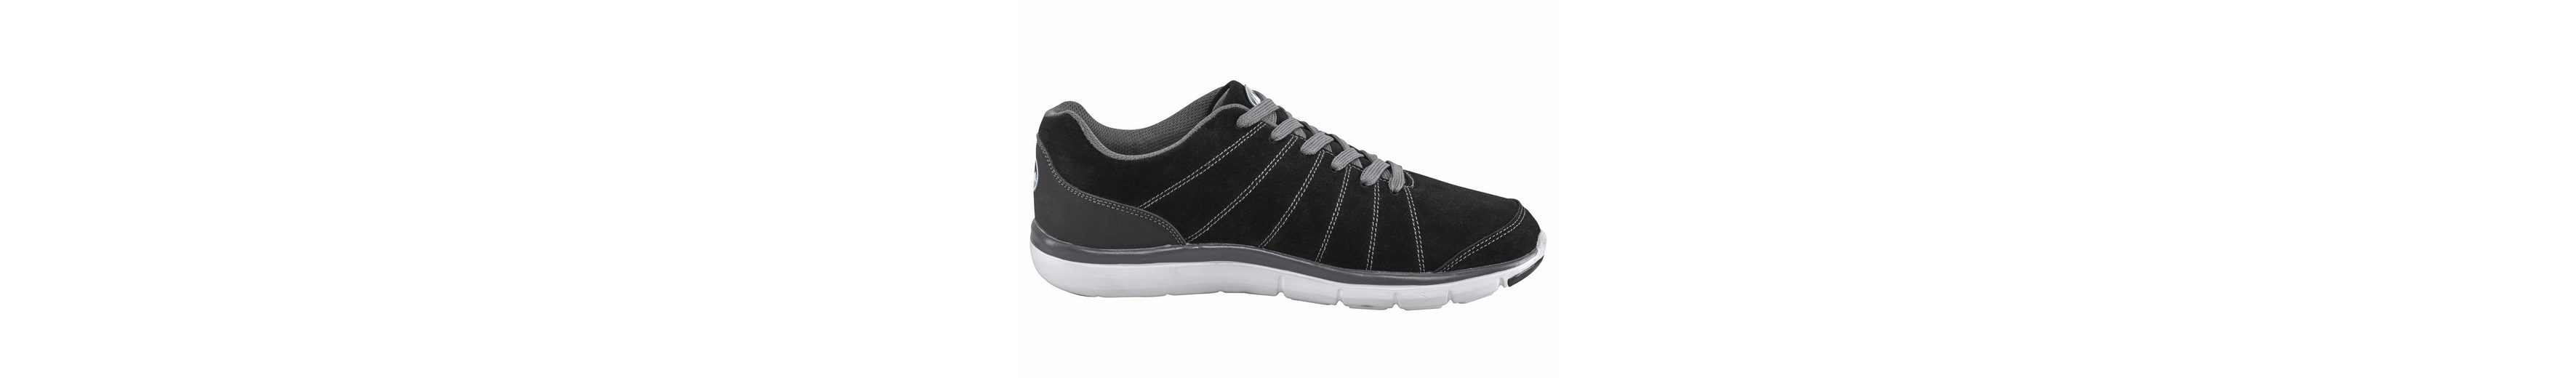 Billige Neuesten Kollektionen Polarino Cloud Outdoorschuh Outlet Rabatt Az8IUu